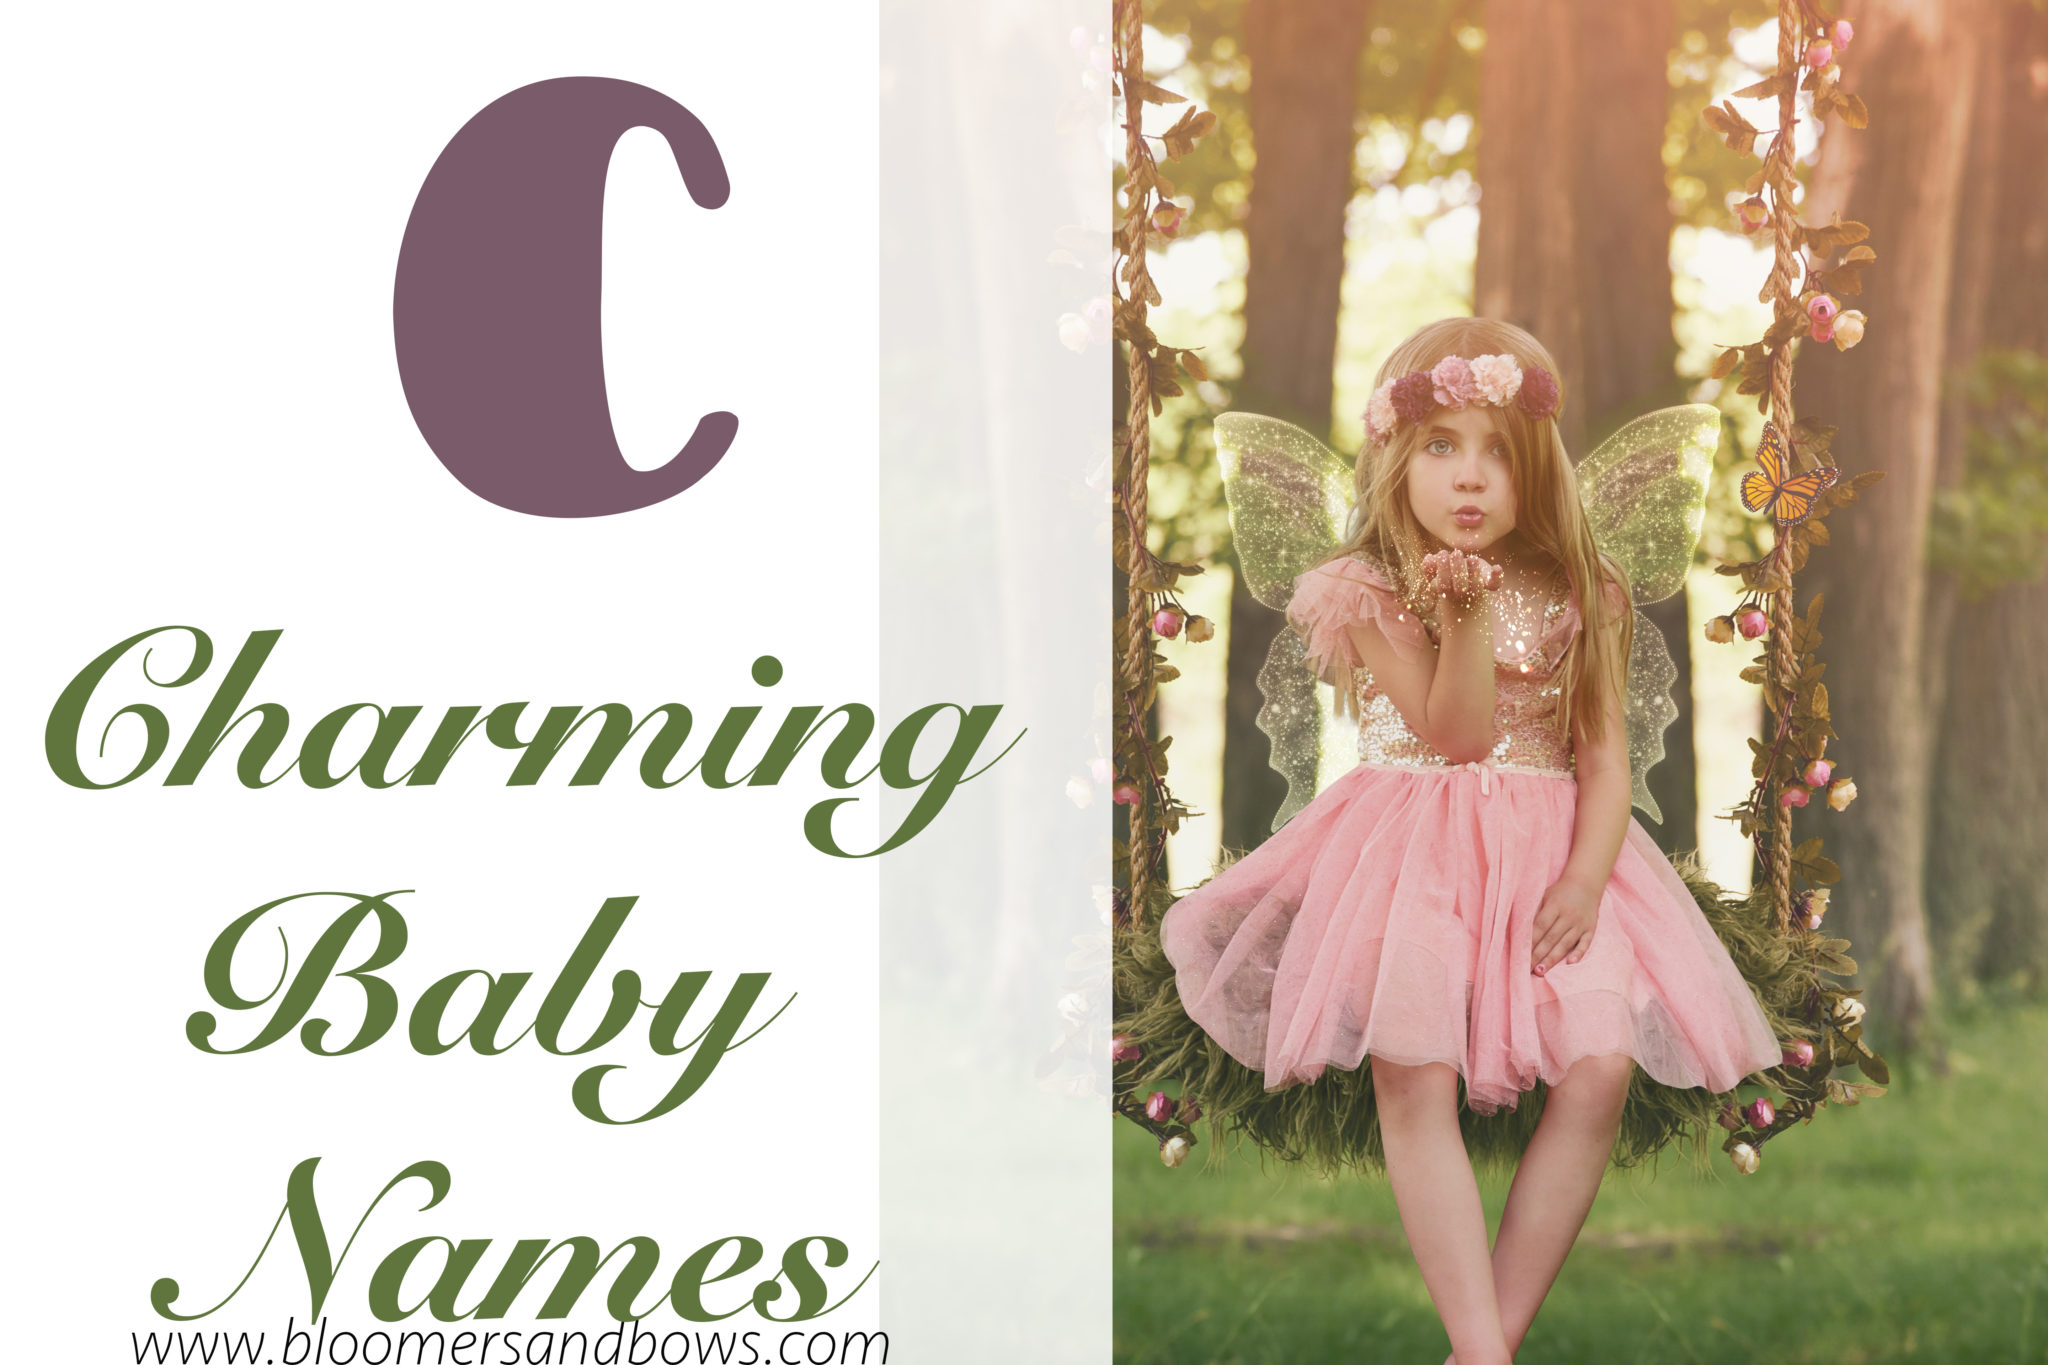 Charming Names For Little Girls with the Letter C | Bloomers and Bows | www.bloomersandbows.com